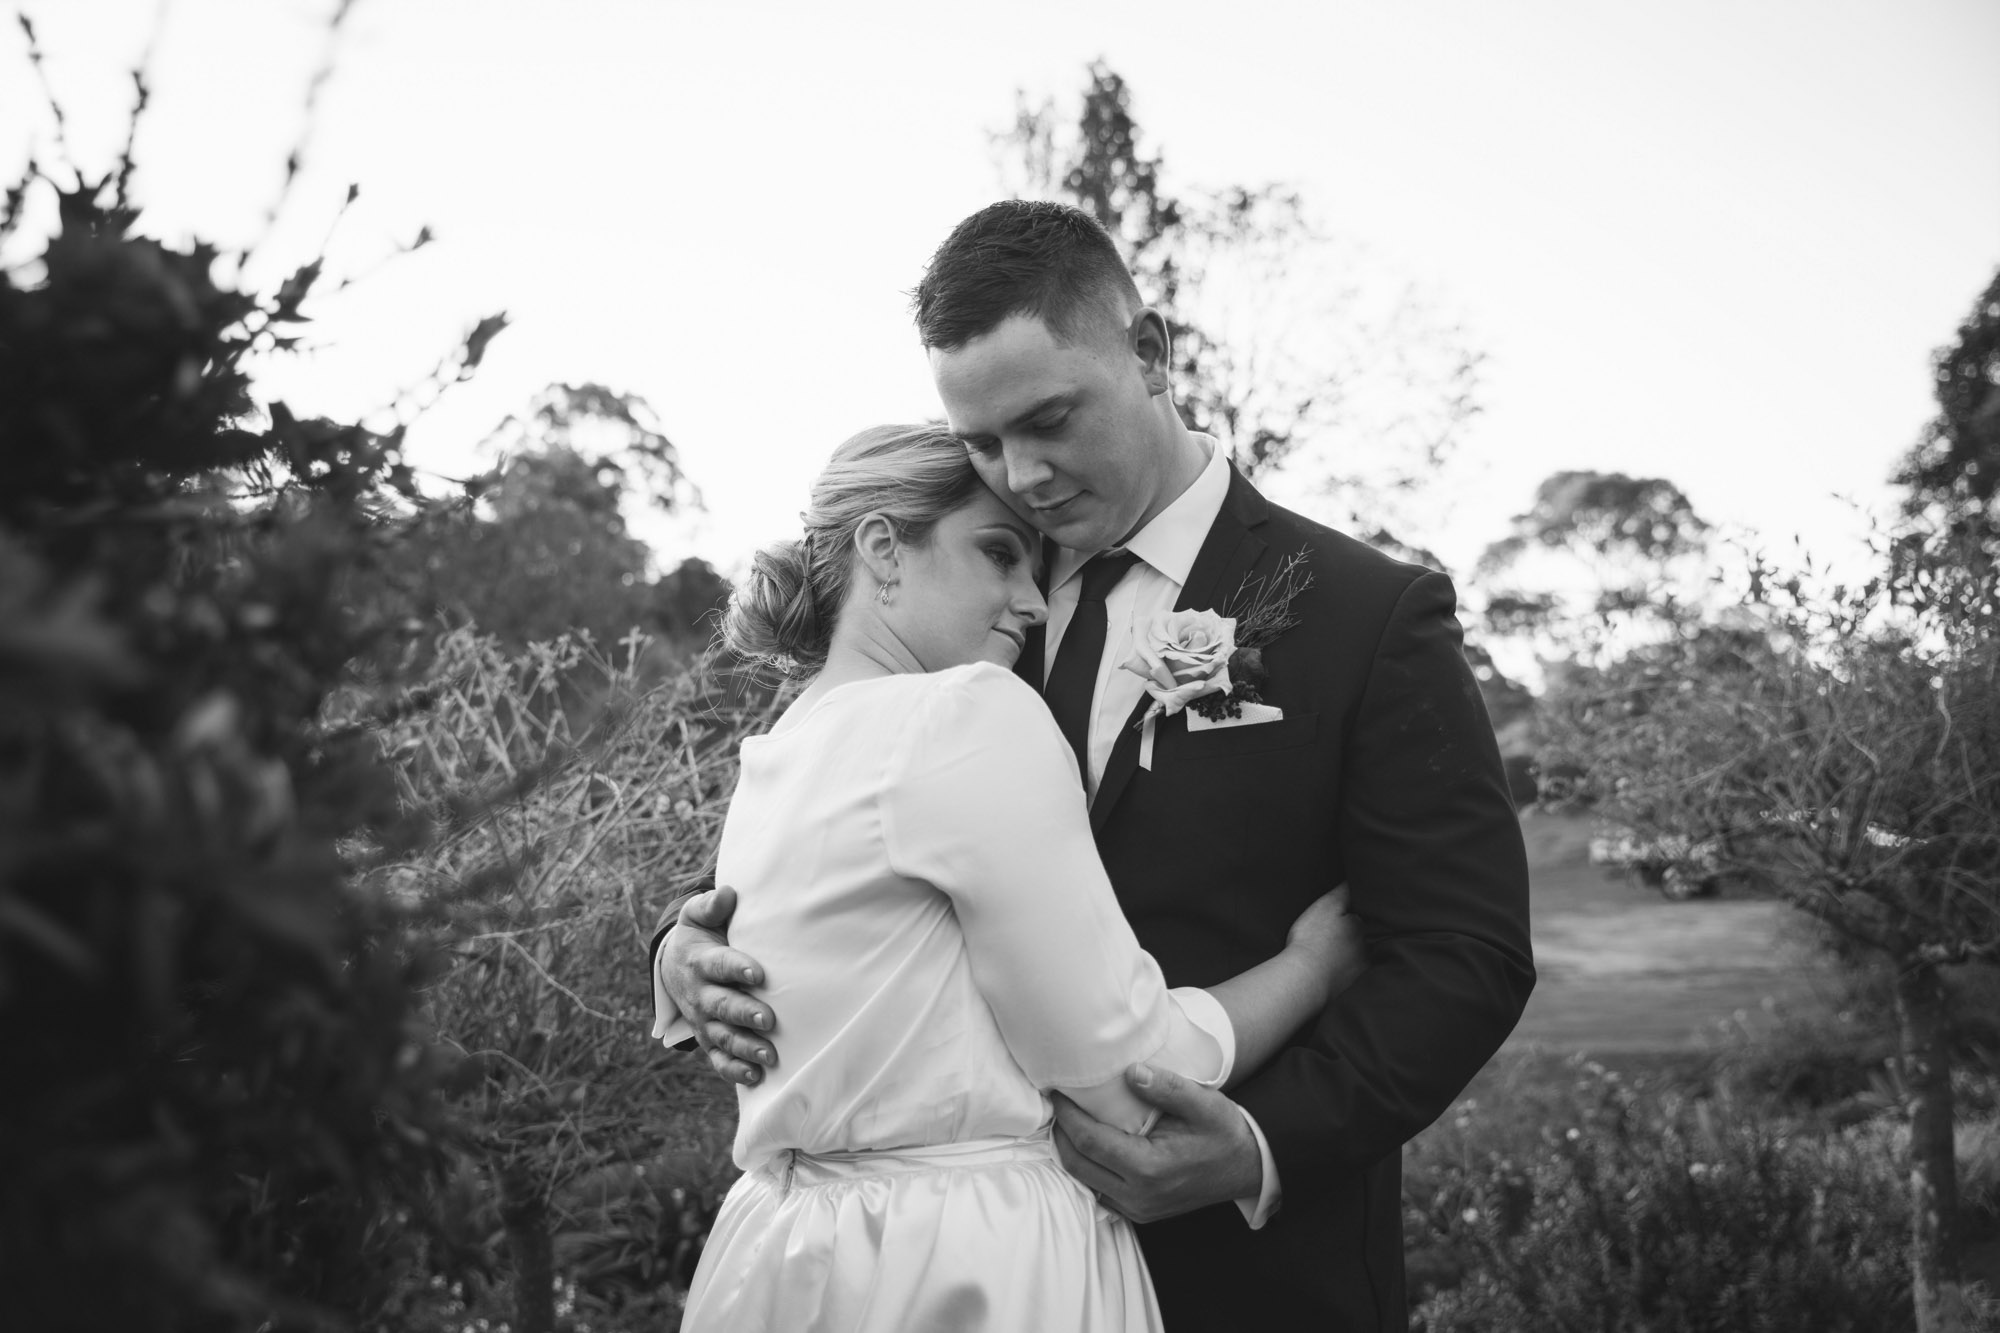 Angie-Roe-Photography-Wedding-Perth-Northam-Wheatbelt-Country-Rural (84).jpg